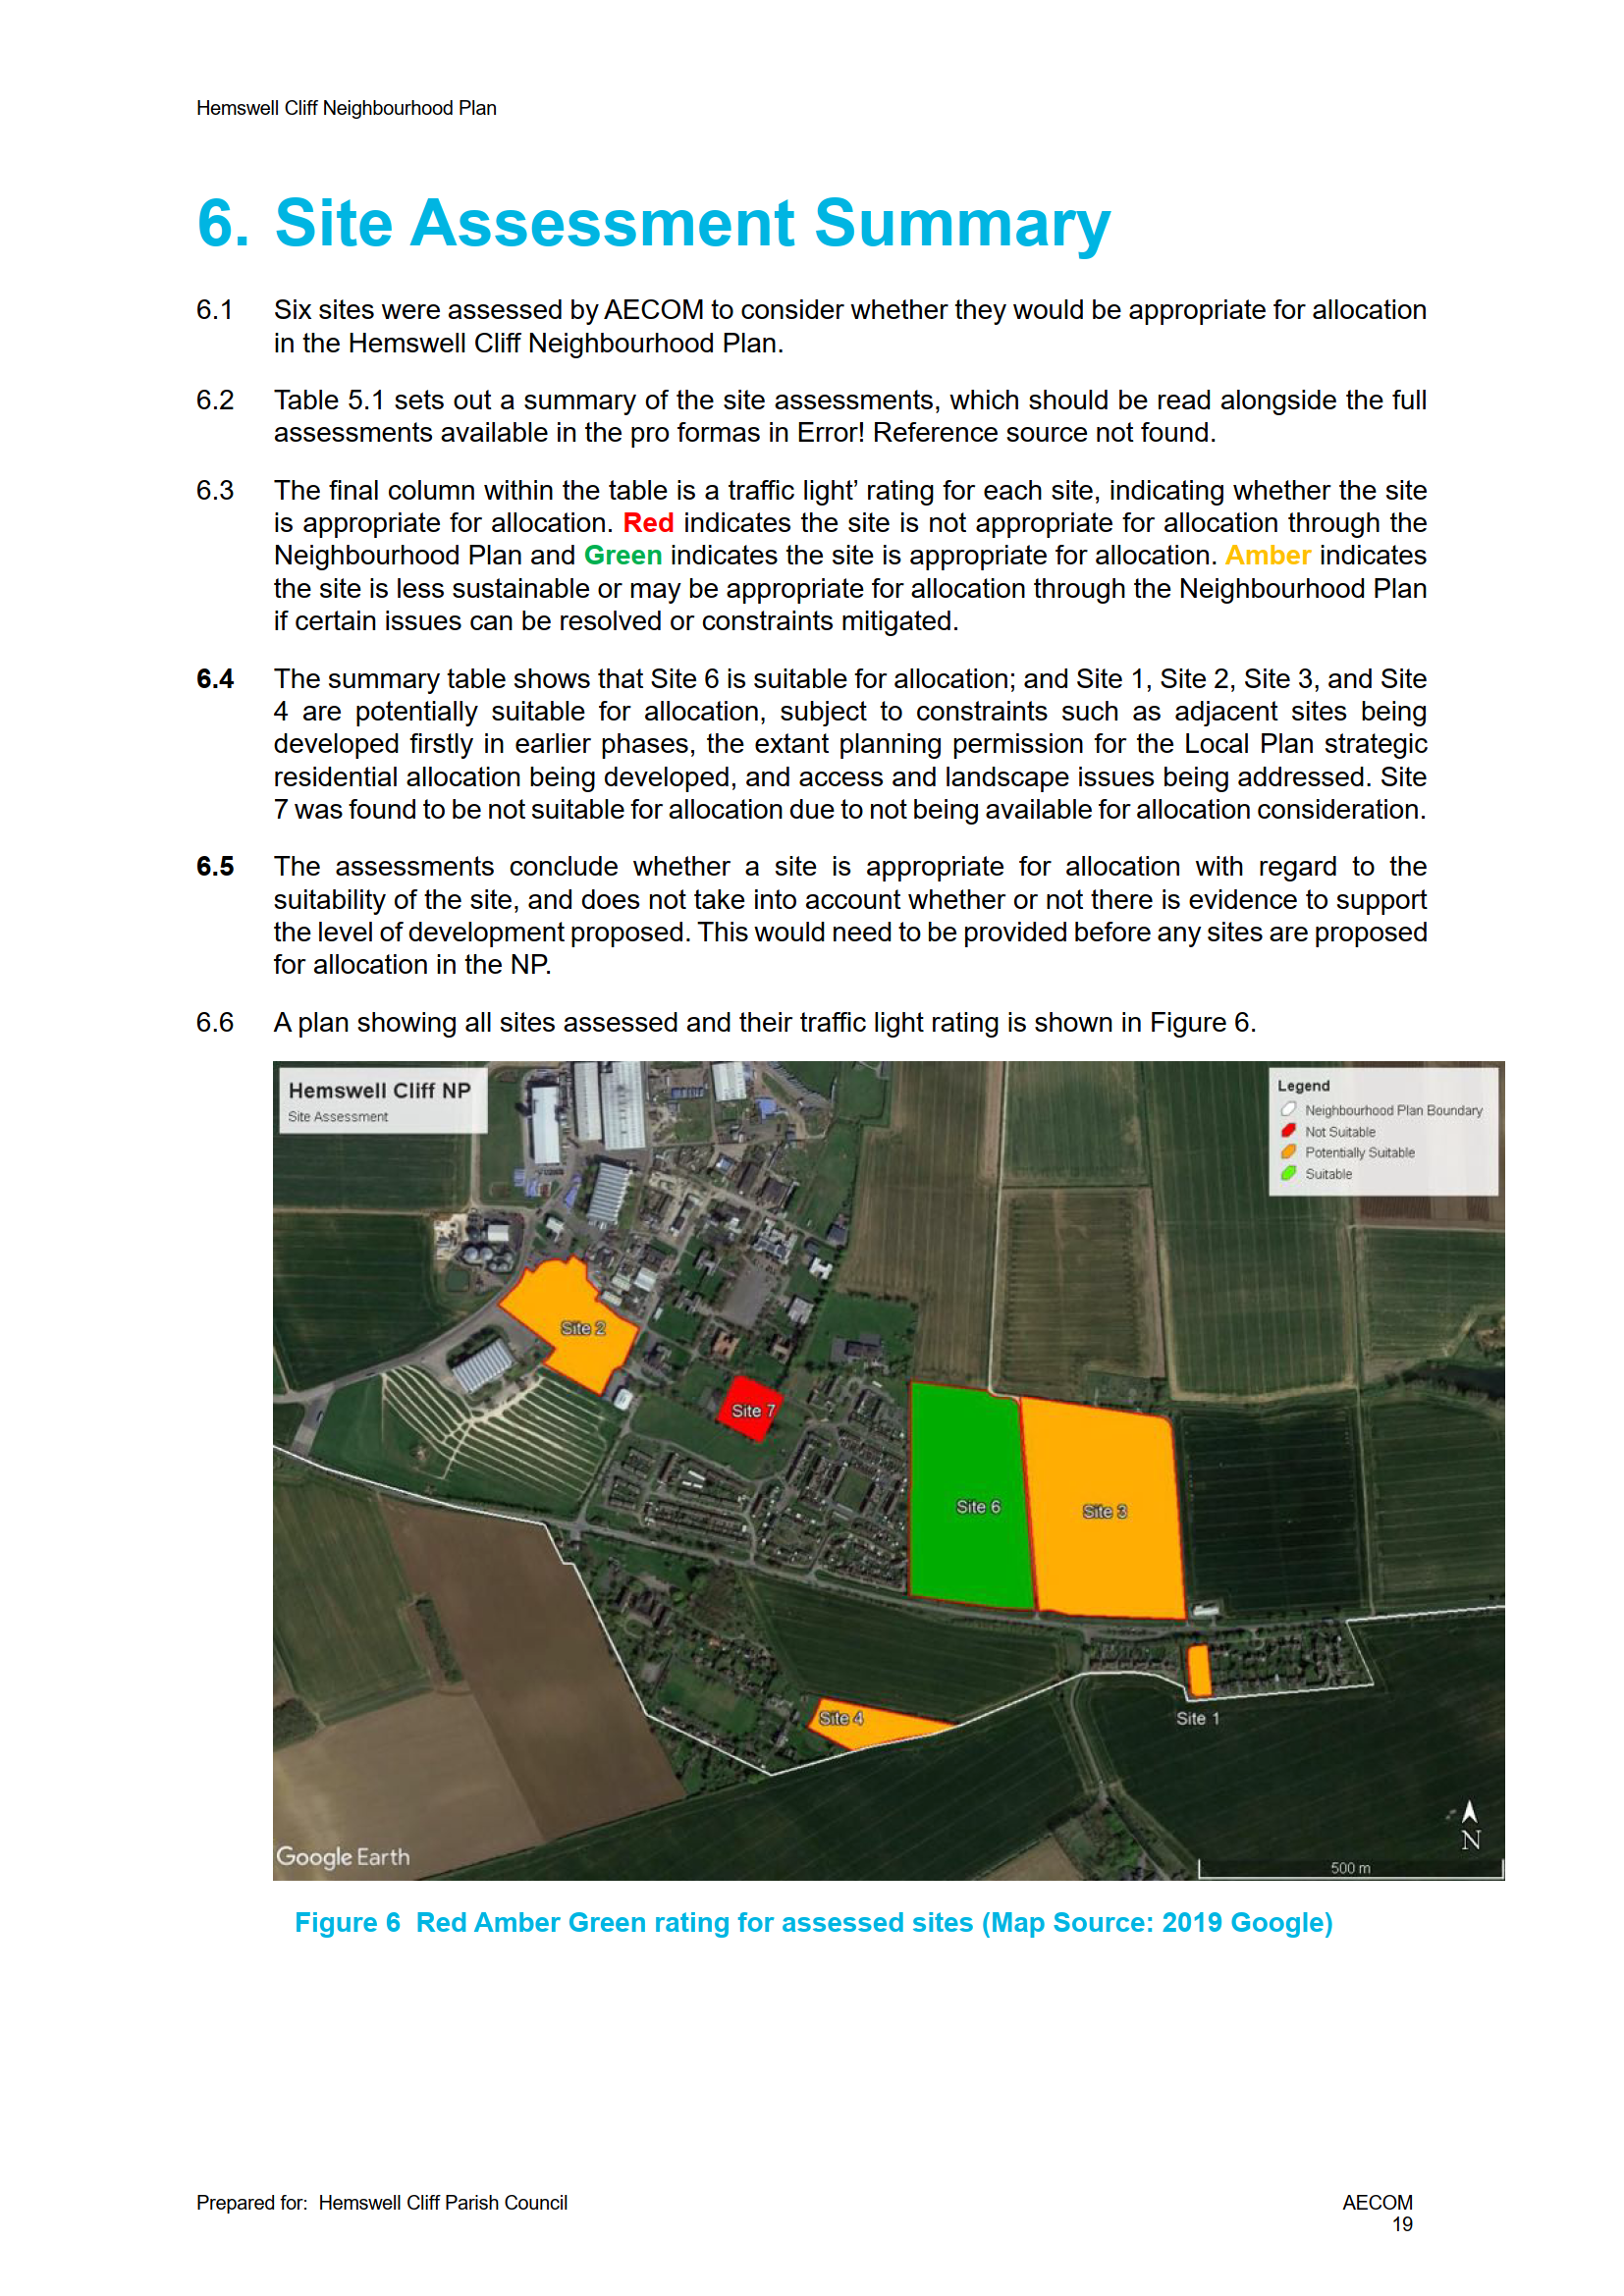 Hemswell_Cliff_Site_Options_and_Assessment_Final_041119-2_19.png